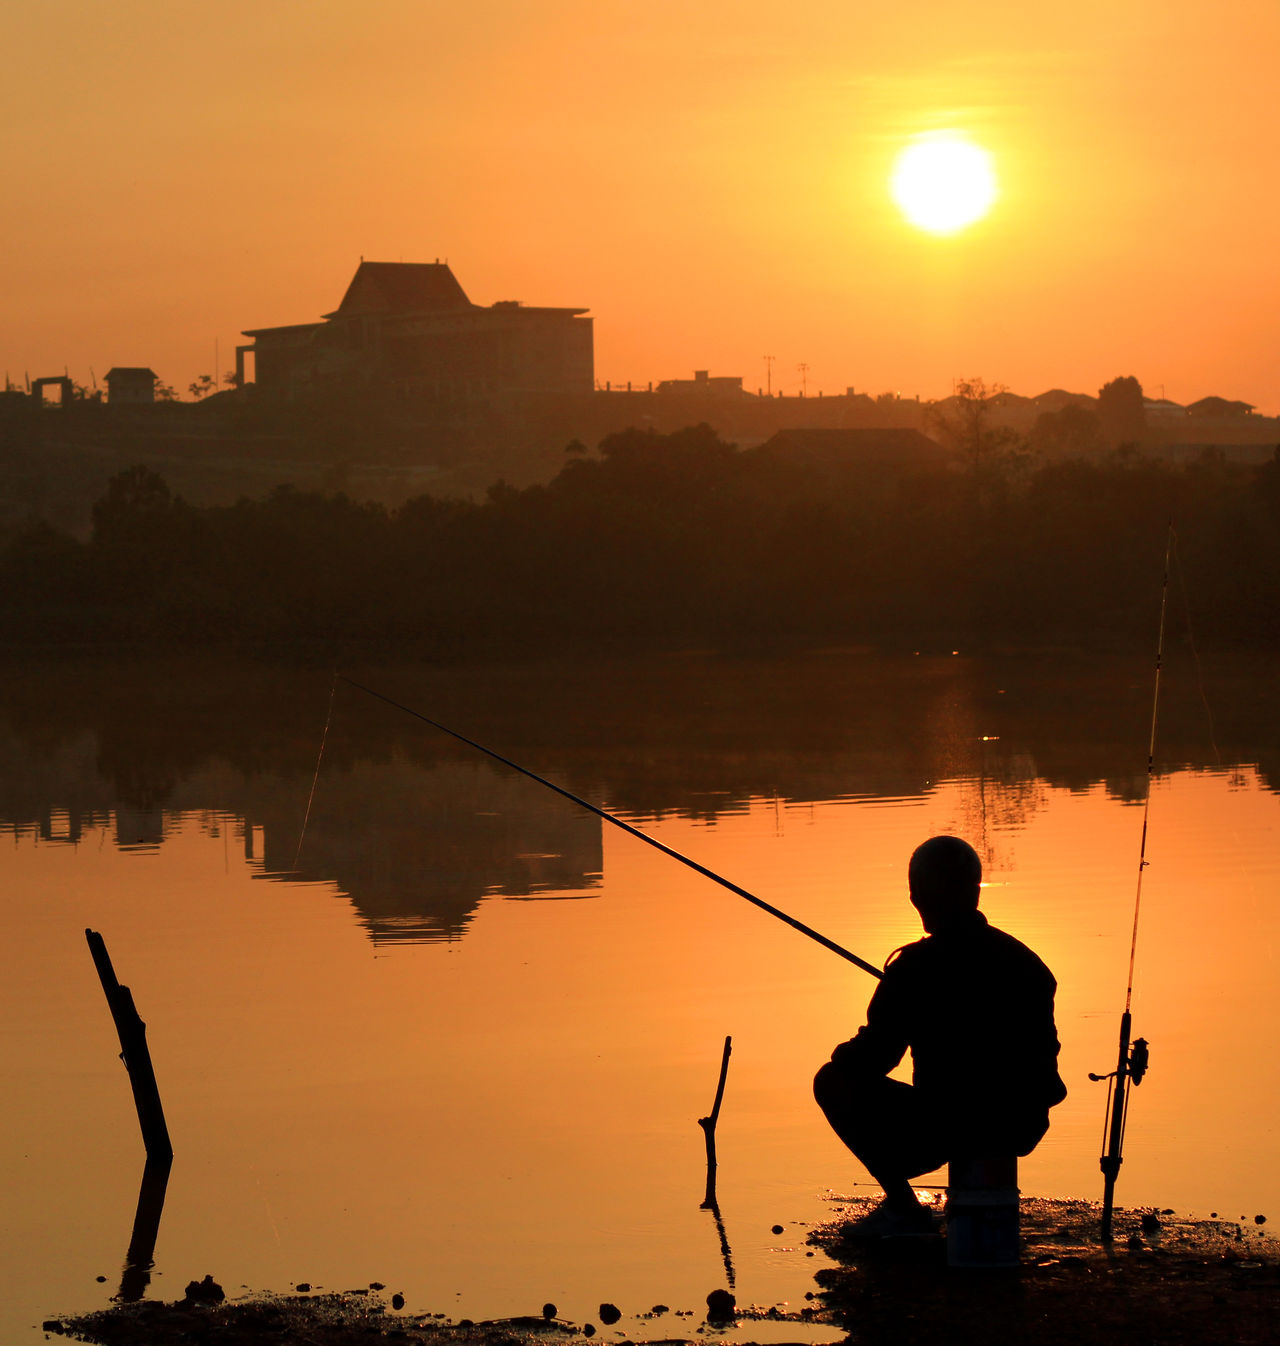 fishing Architecture Beauty In Nature Building Dailylife Fishing INDONESIA Kepulauanriau Ketanjungpinanglah Lake Leisure Activity Lifestyles Nature Orange Colour Outdoors People Senggarang Silhouette Sitting Sky Sunrise Tanjungpinang TravelDestinations Water Wonderfulindonesia Wonderfulkepri